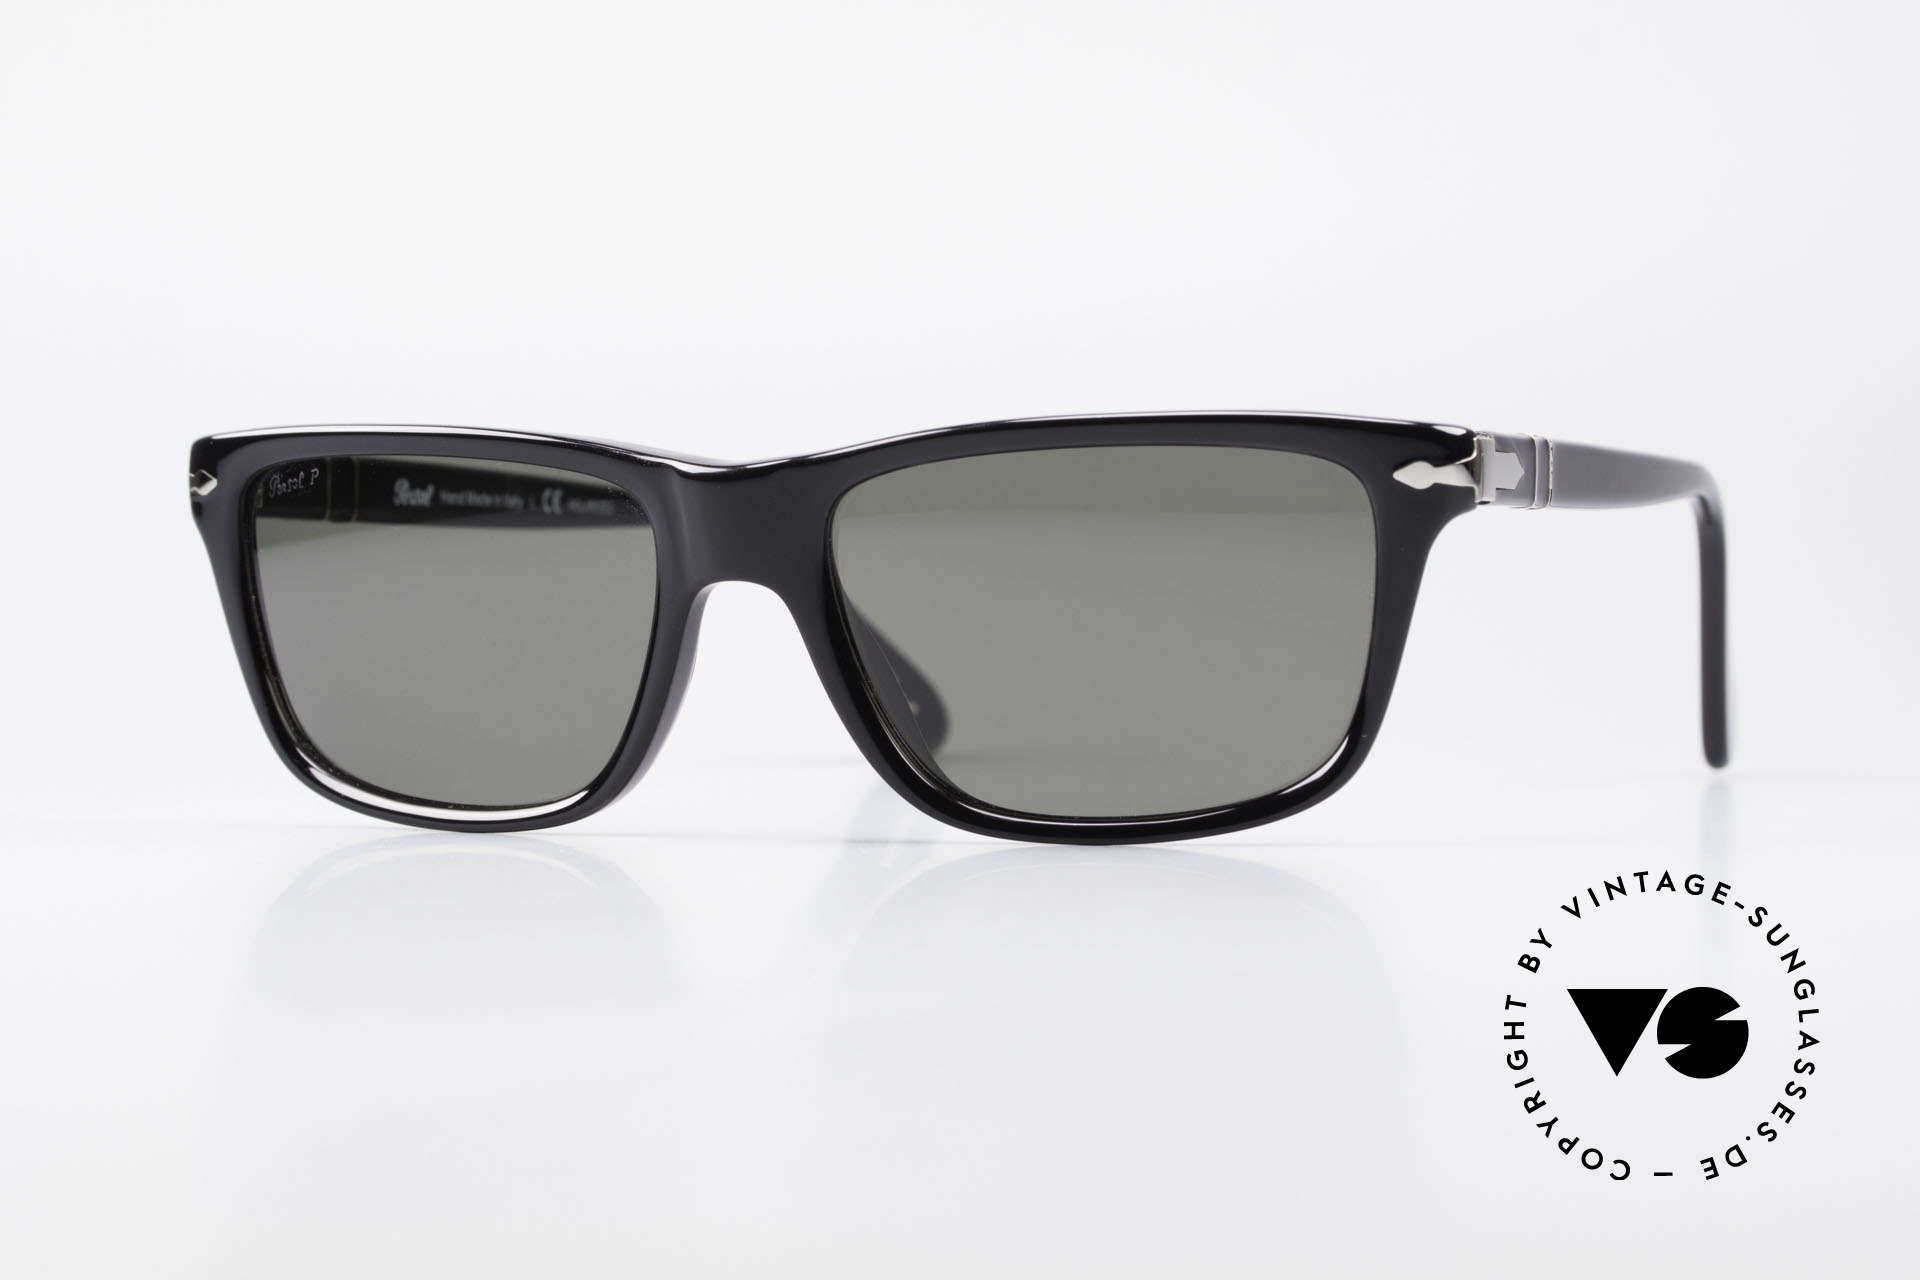 Persol 3026 Classic Sunglasses Polarized, model 3026: very elegant sunglasses by Persol, Made for Men and Women